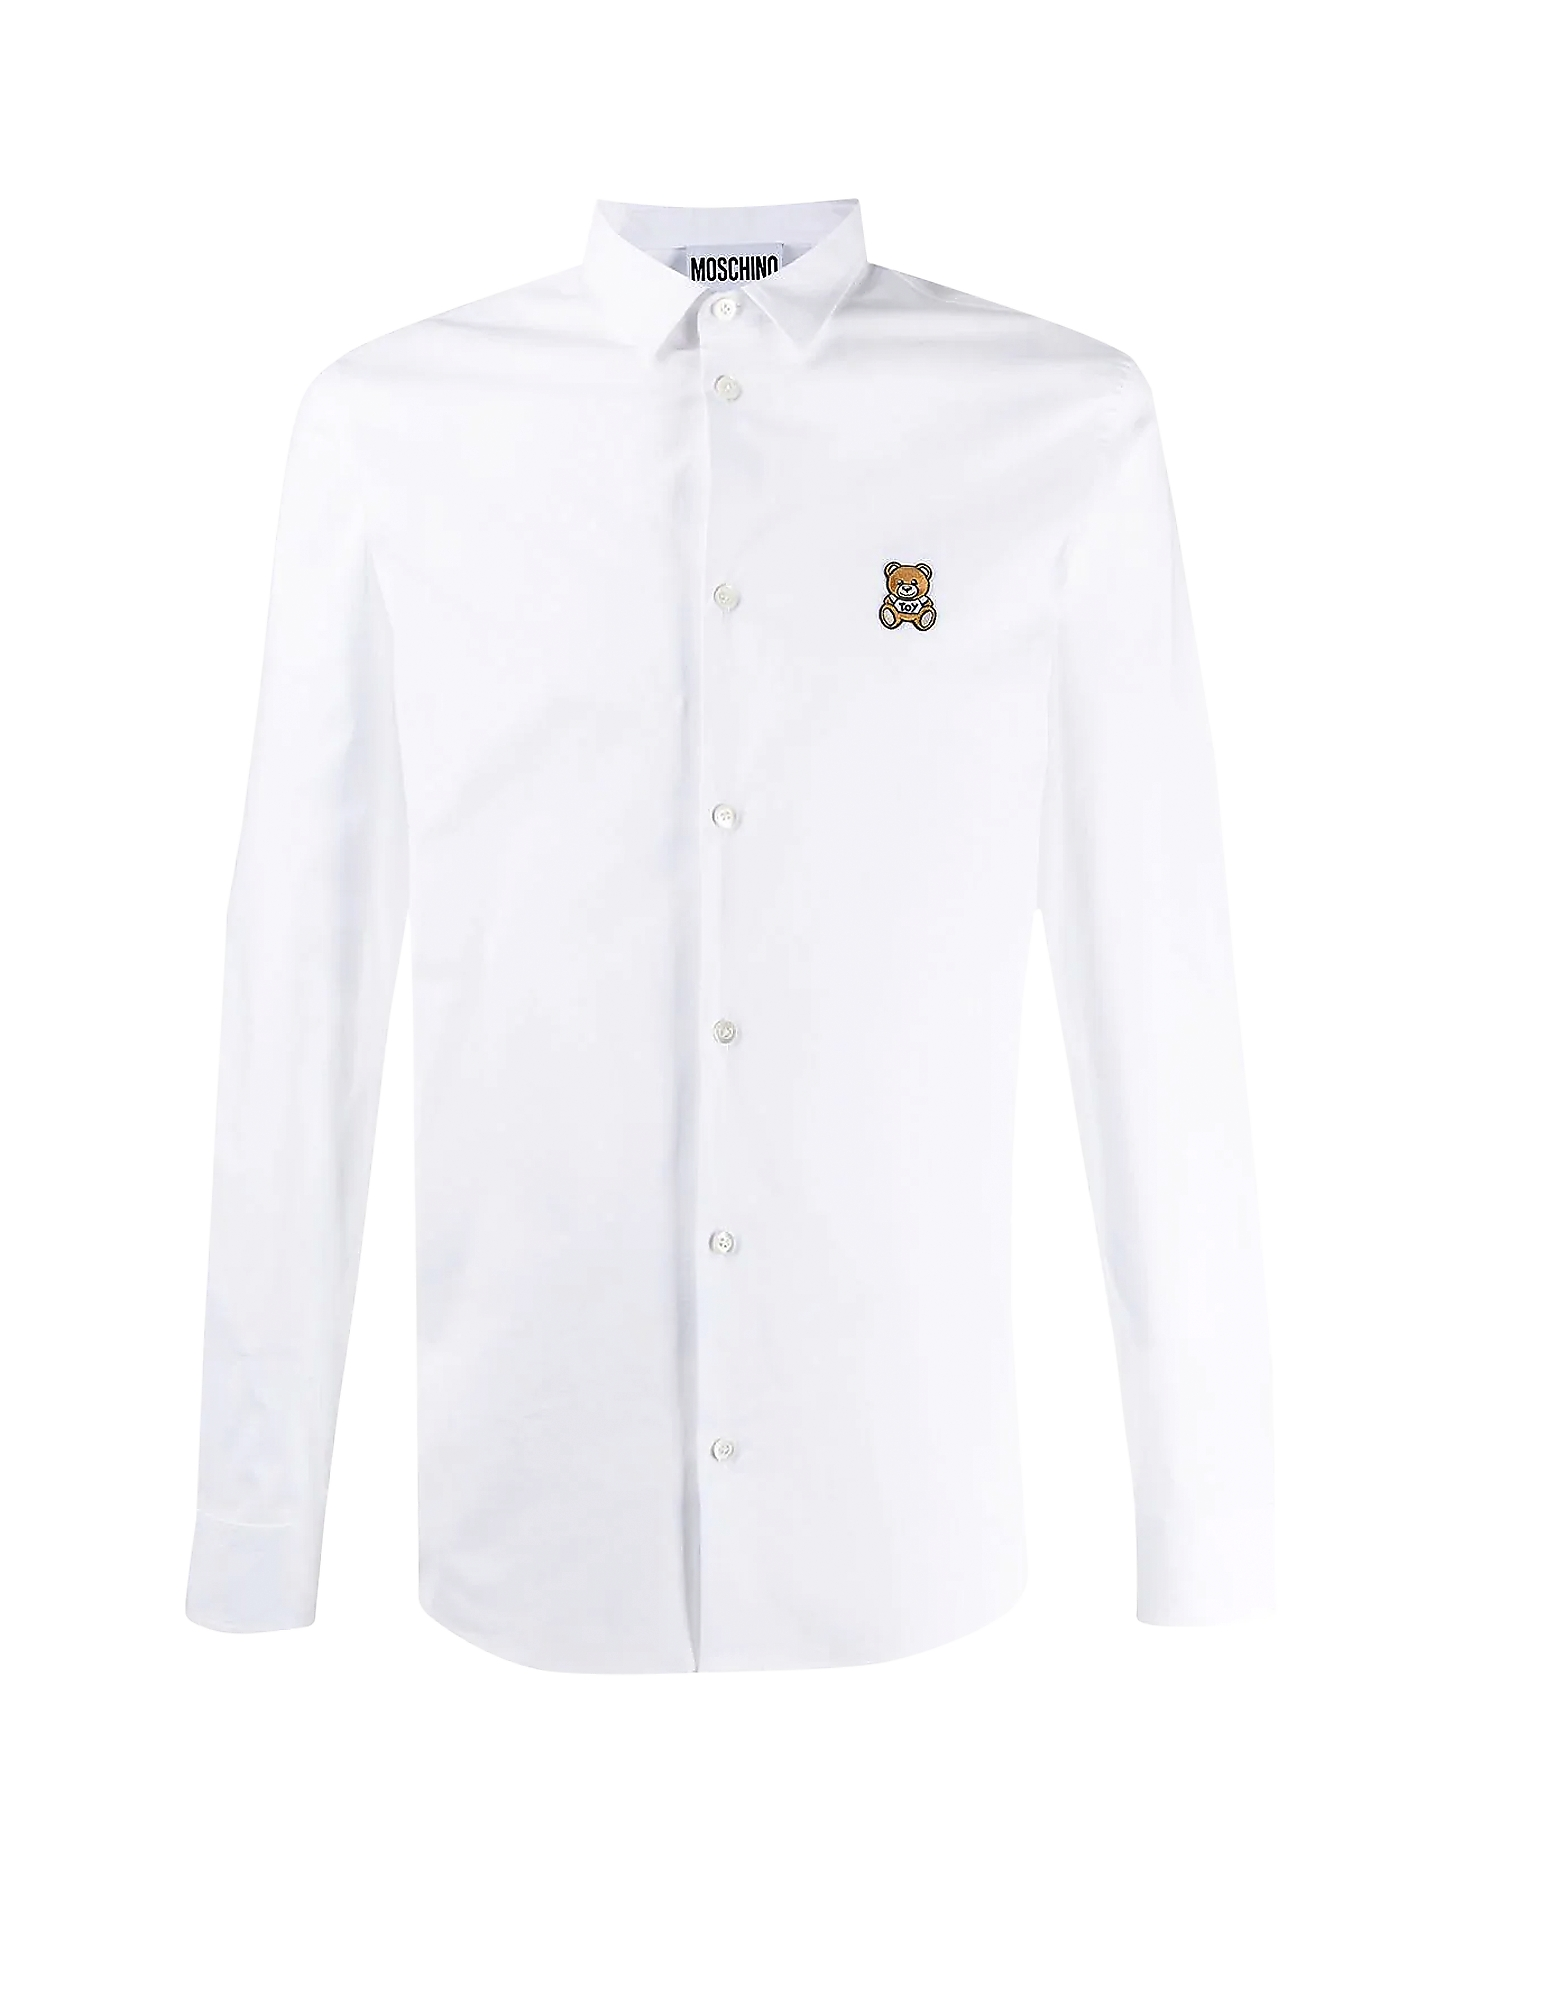 Moschino Designer Shirts, Teddy Bear Embroidered Cotton Men's Slim Fit Dress Shirt